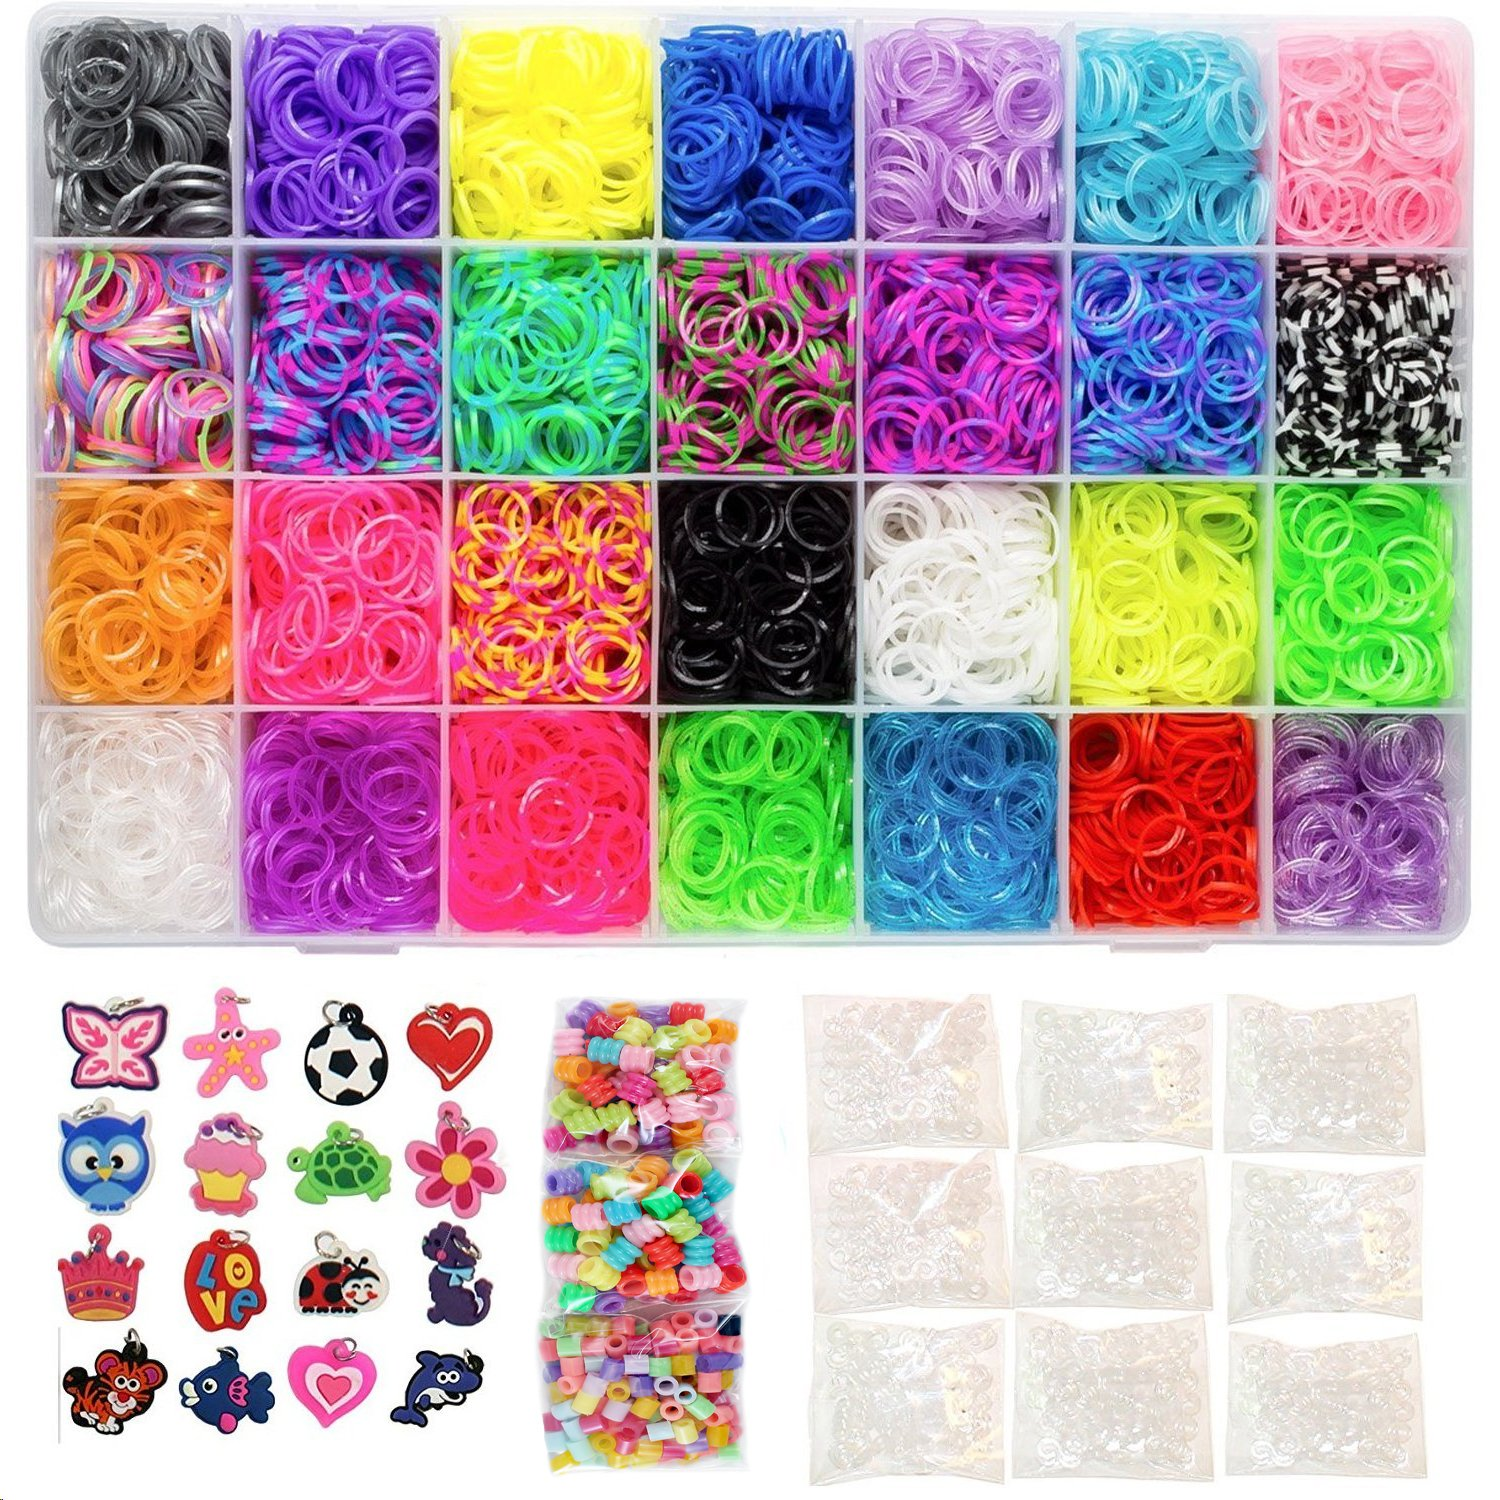 11000 Pc Rainbow Color Loom Bands Mega DIY Refill - 10500 Premium Quality Rubber Bands, 500 S Clips, 175 Beads, 24 Charms & Organizer Case